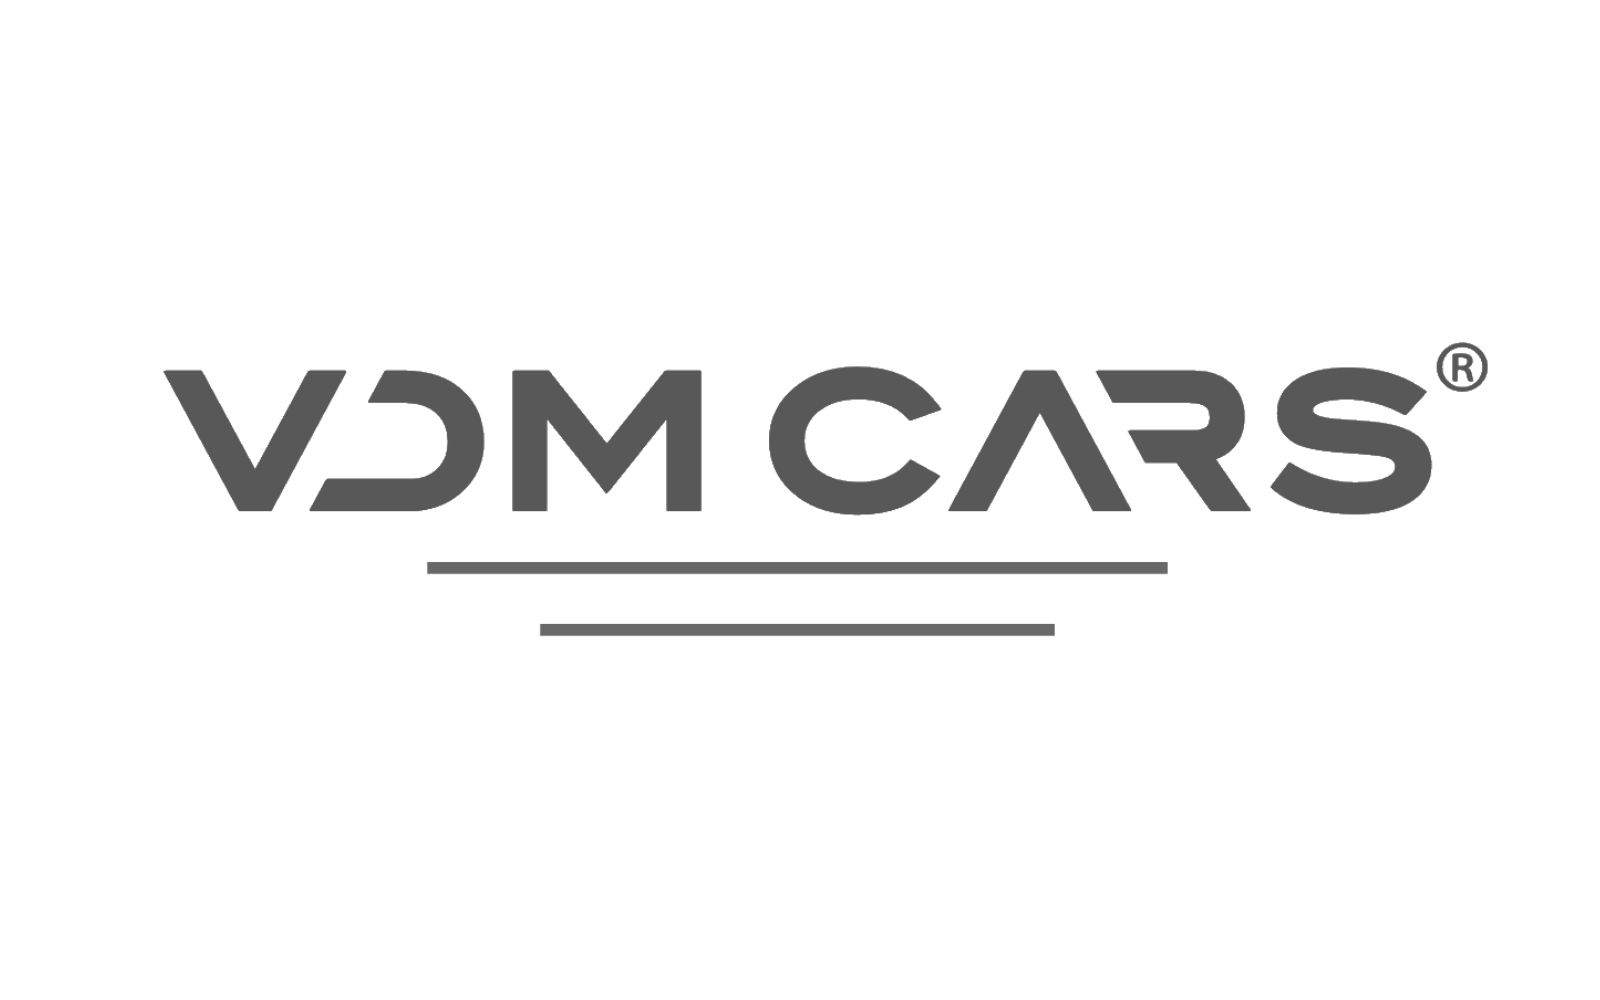 VDM Cars Opblaasbare tenten promotie marketing EBS